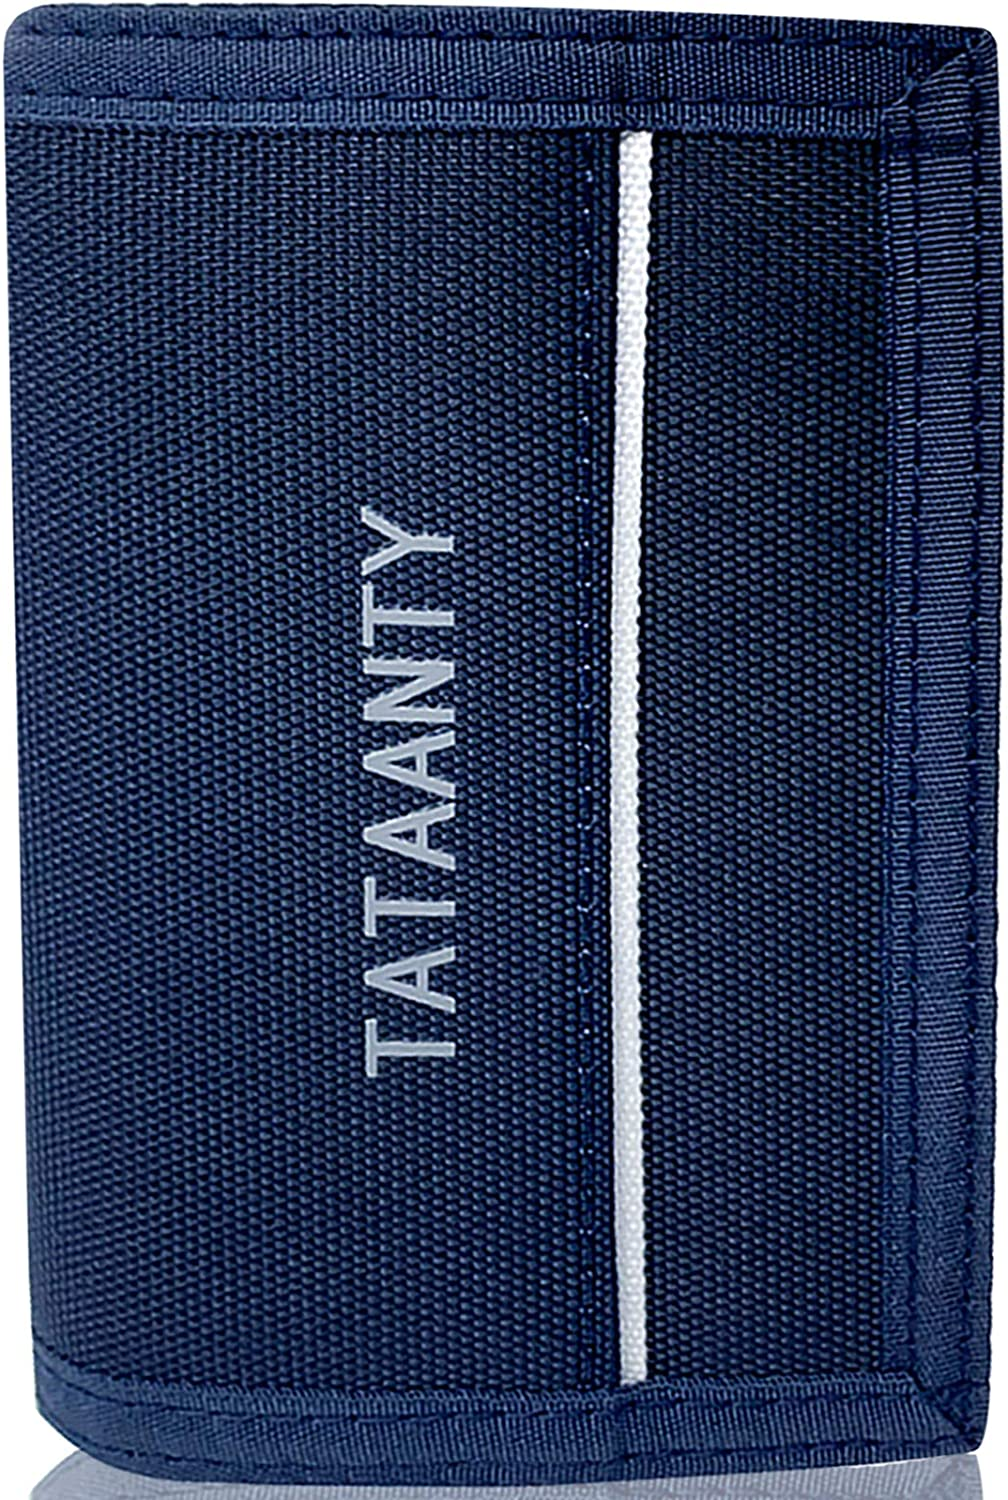 Men's Wallet,Kids Wallets for Teens Boys with Velcro - Keychain Trifold Canvas Wallet with Coin Zipper Pocket (Navy Blue)